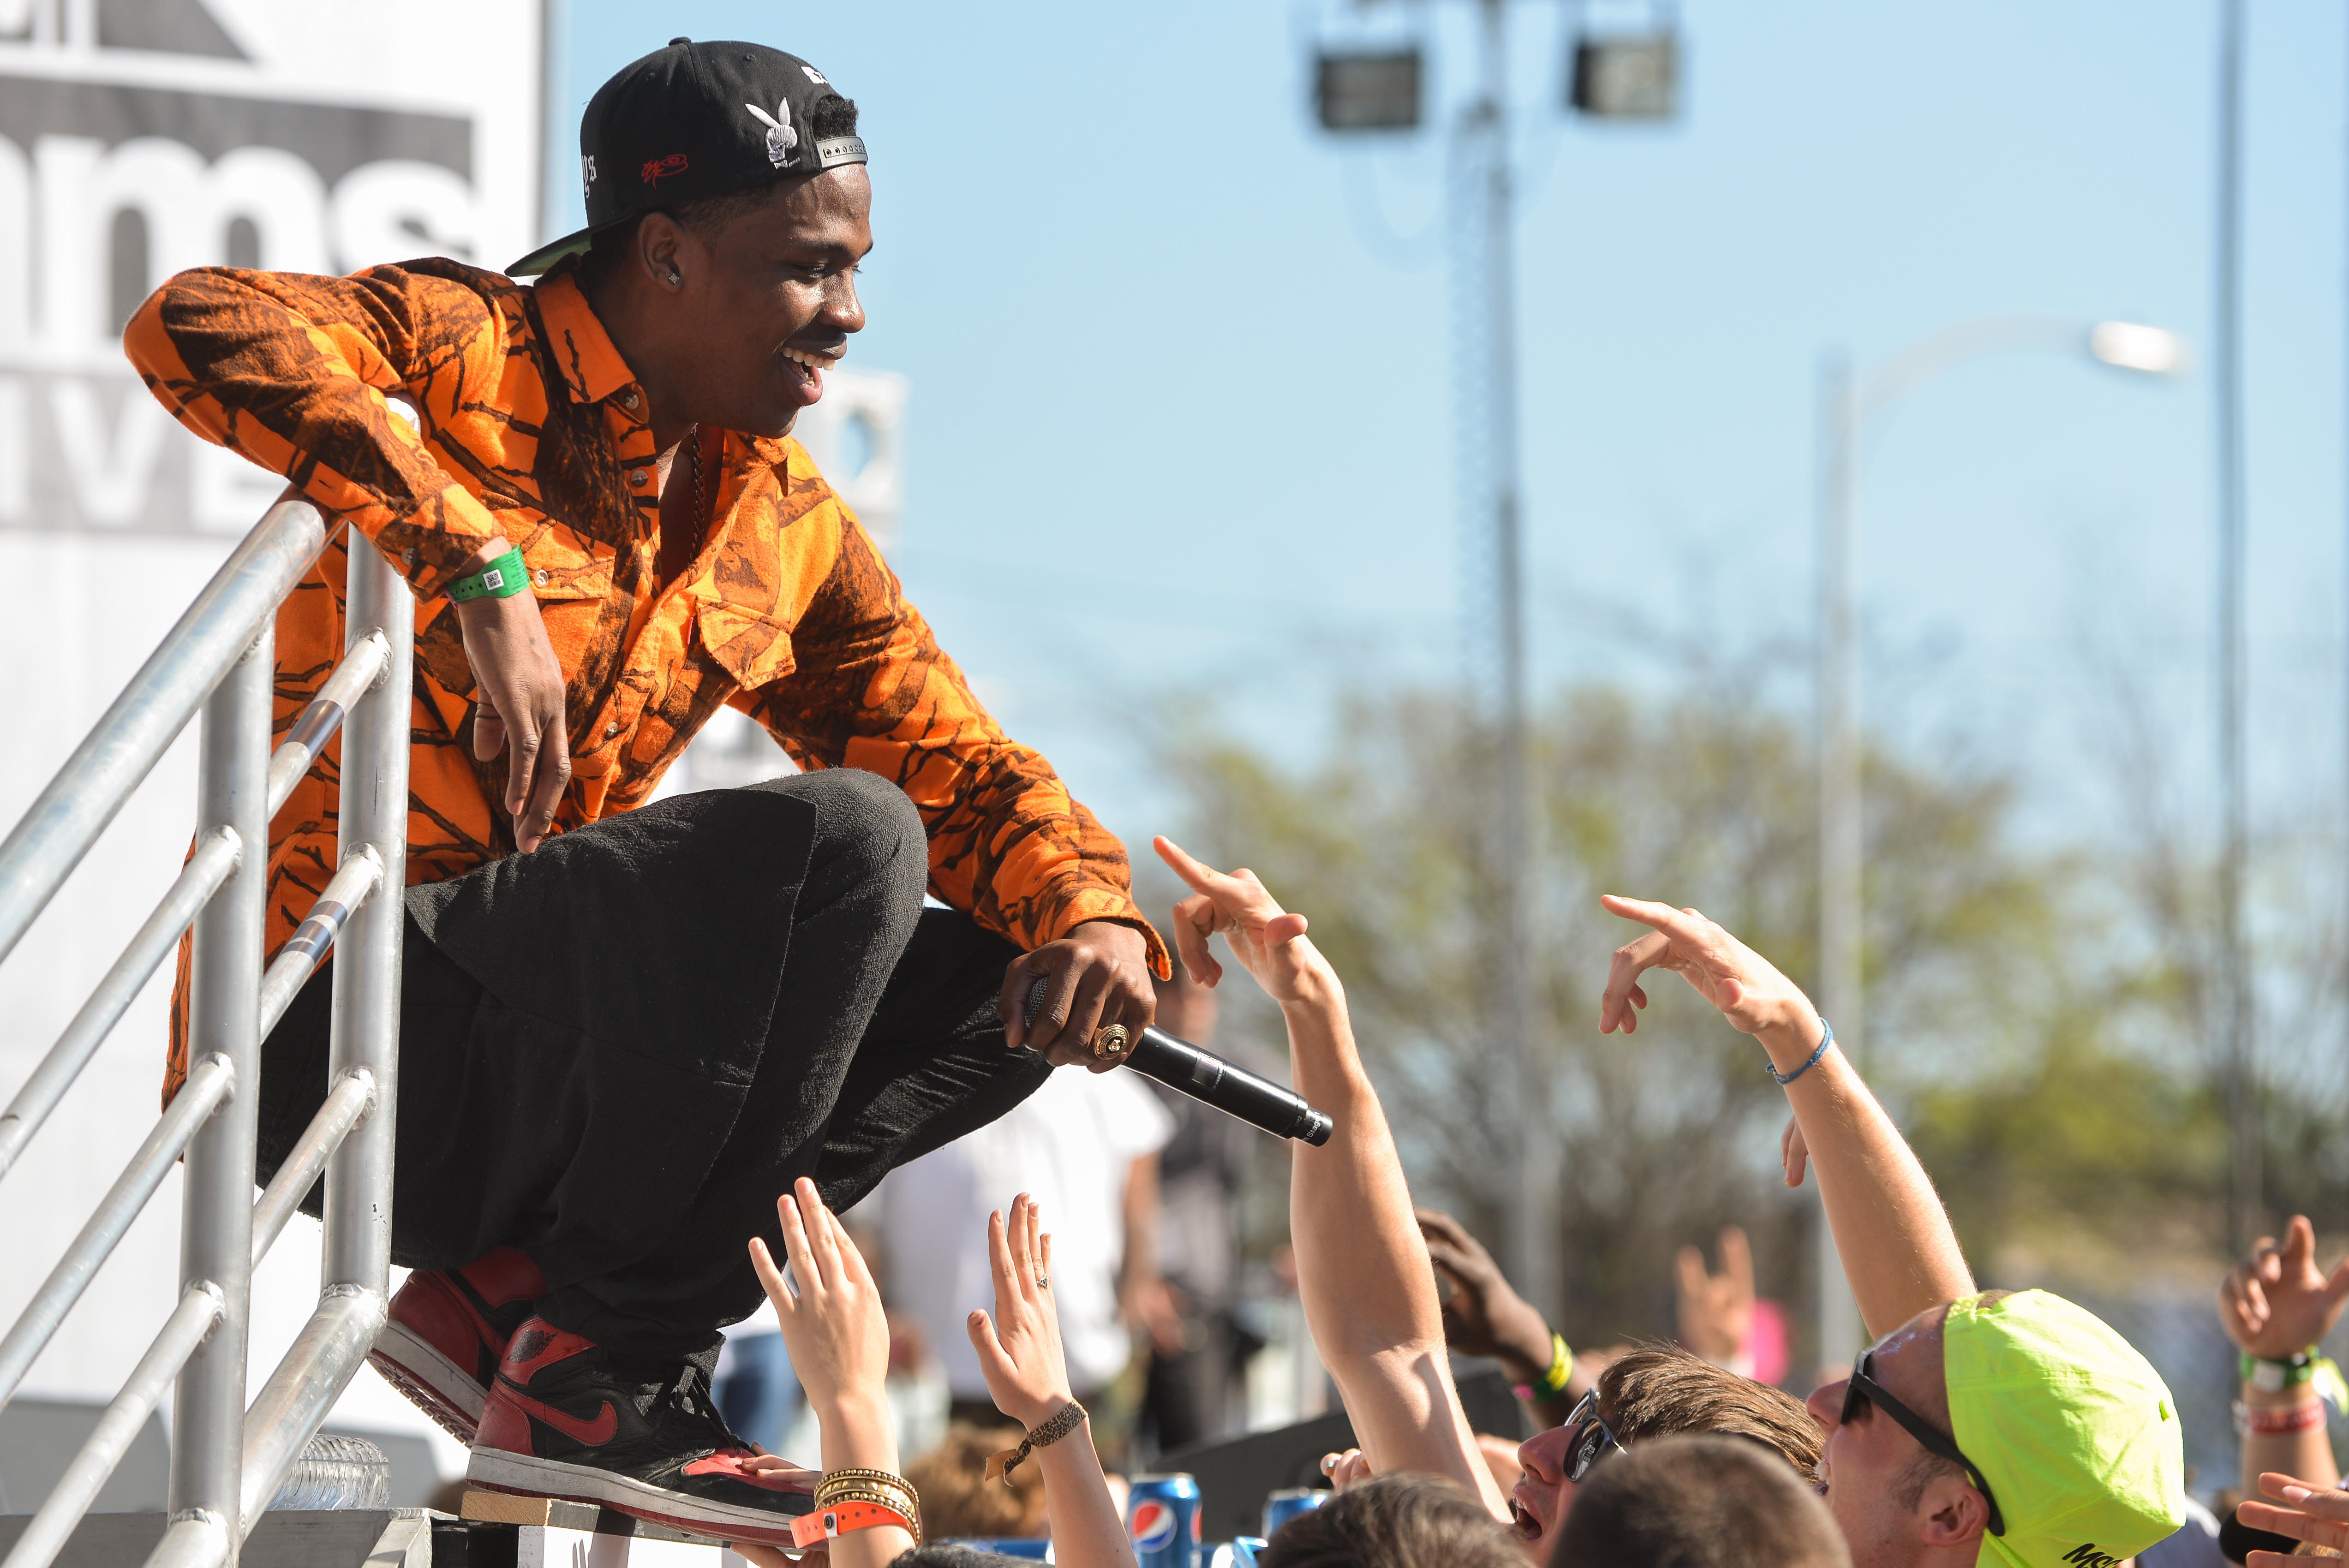 f8c08c506bc4 Travi$ Scott's Announces 'Rodeo' Release Date | 97.9 The Beat